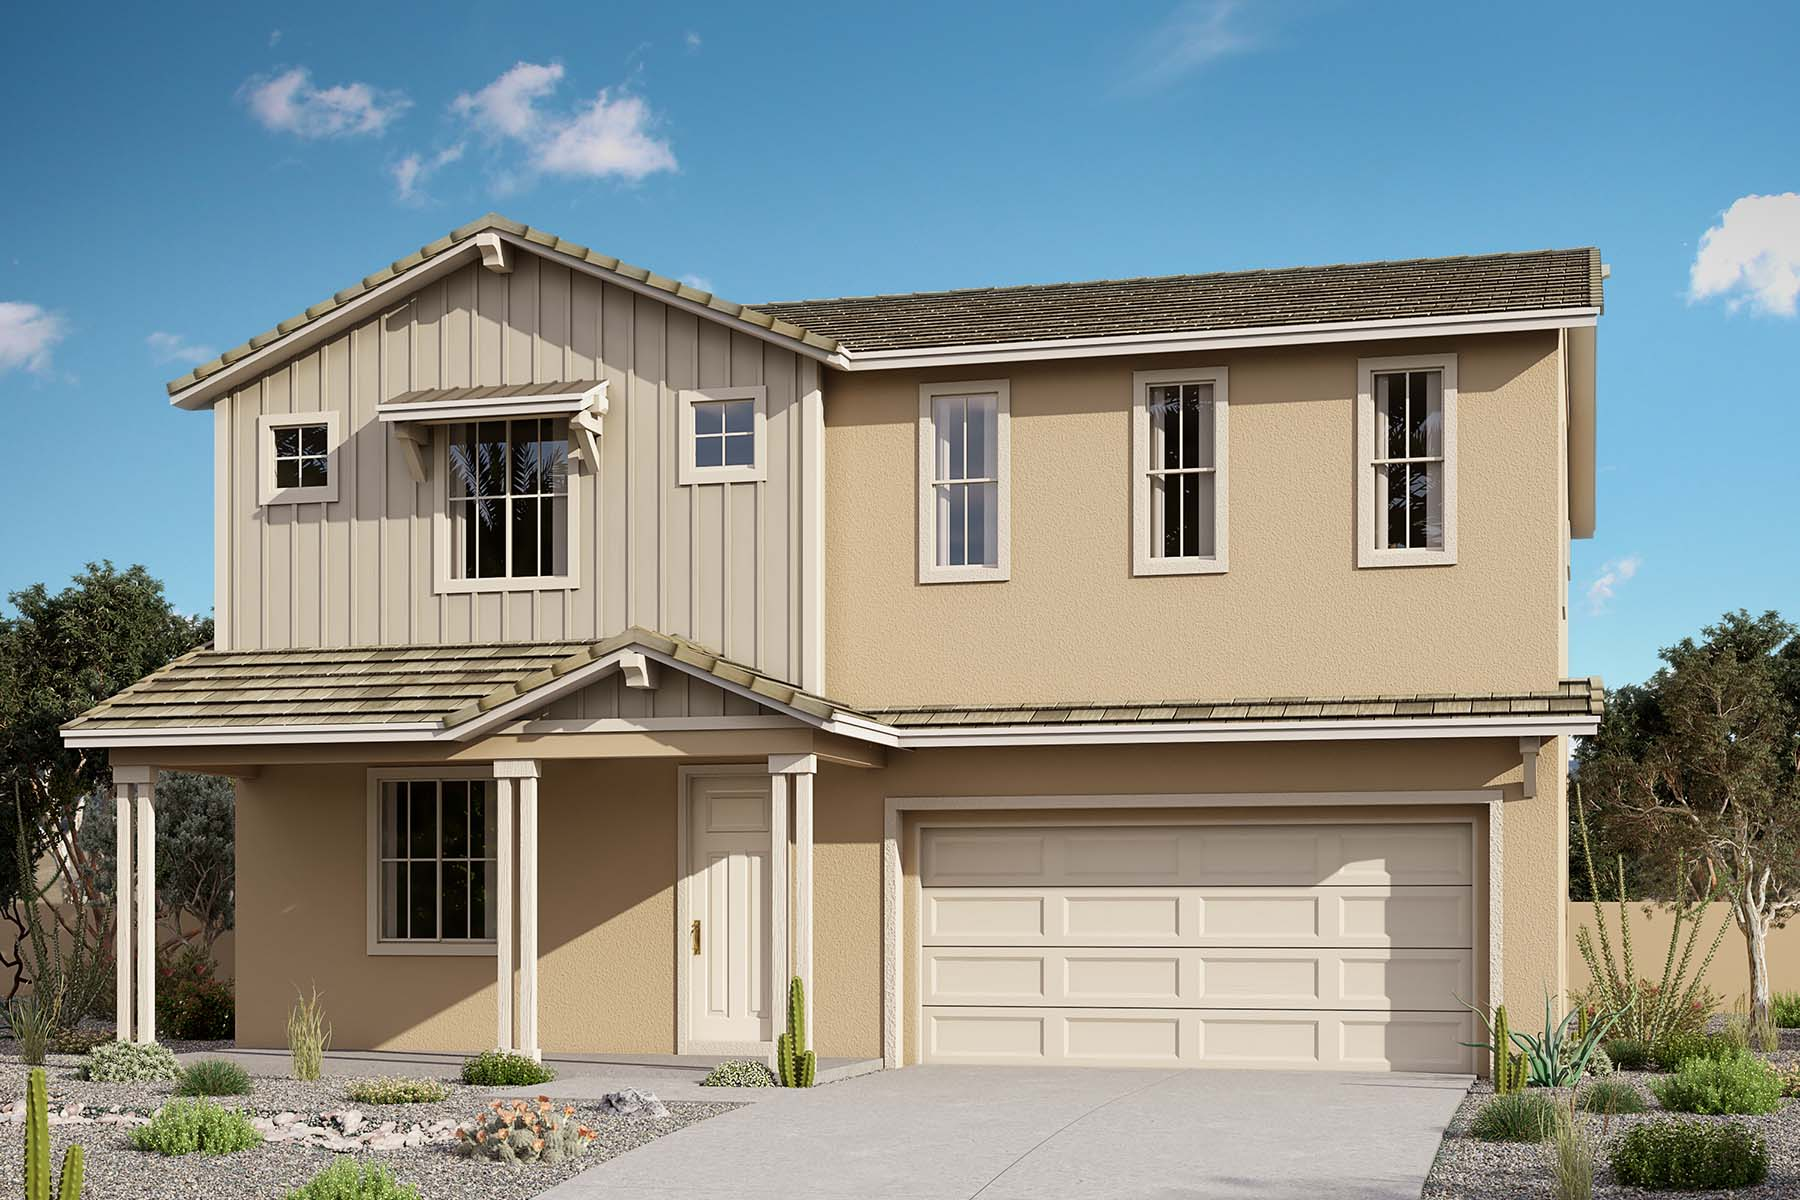 Sunflower Plan Elevation Front at Brookside at Arroyo Seco in Buckeye Arizona by Mattamy Homes